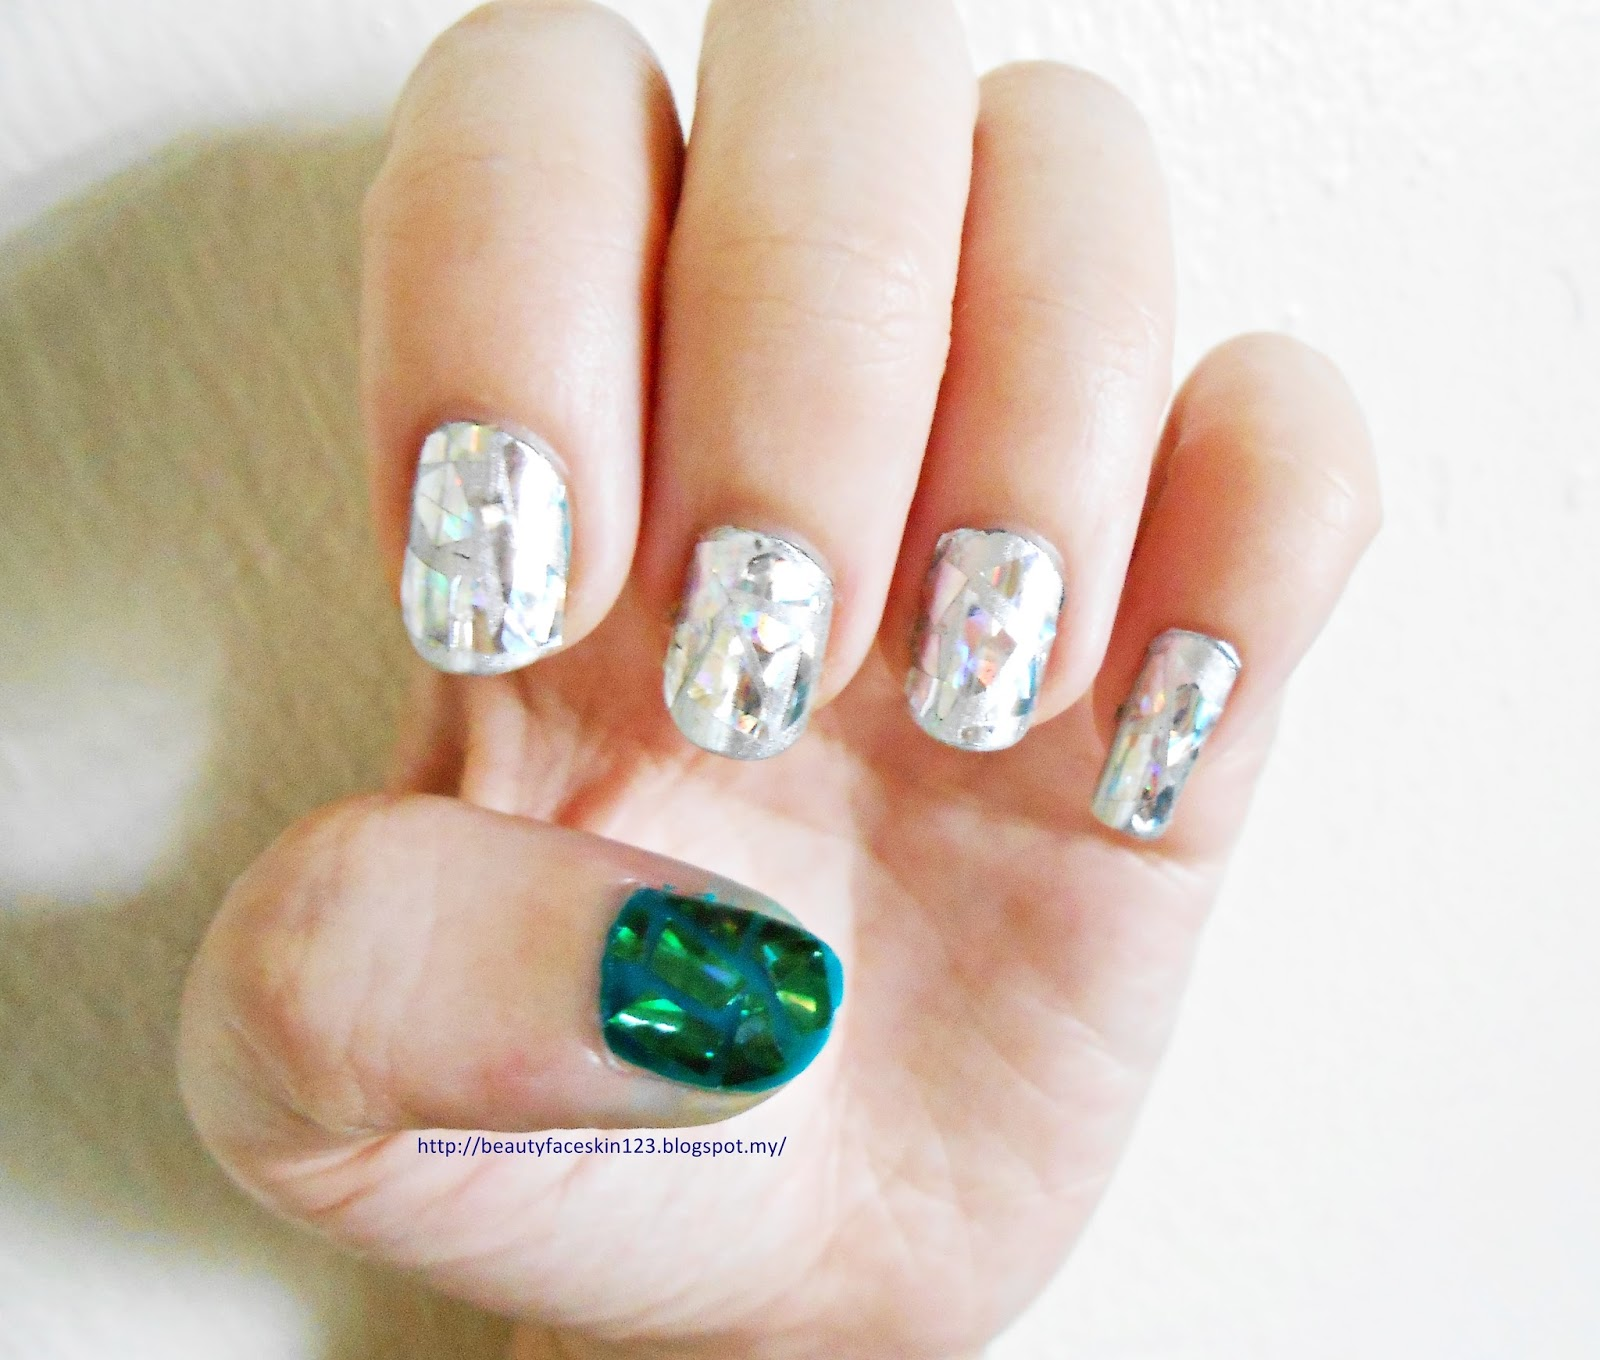 GREAT SKIN&LIFE: EASY SHATTERED GLASS NAIL ART TUTORIAL